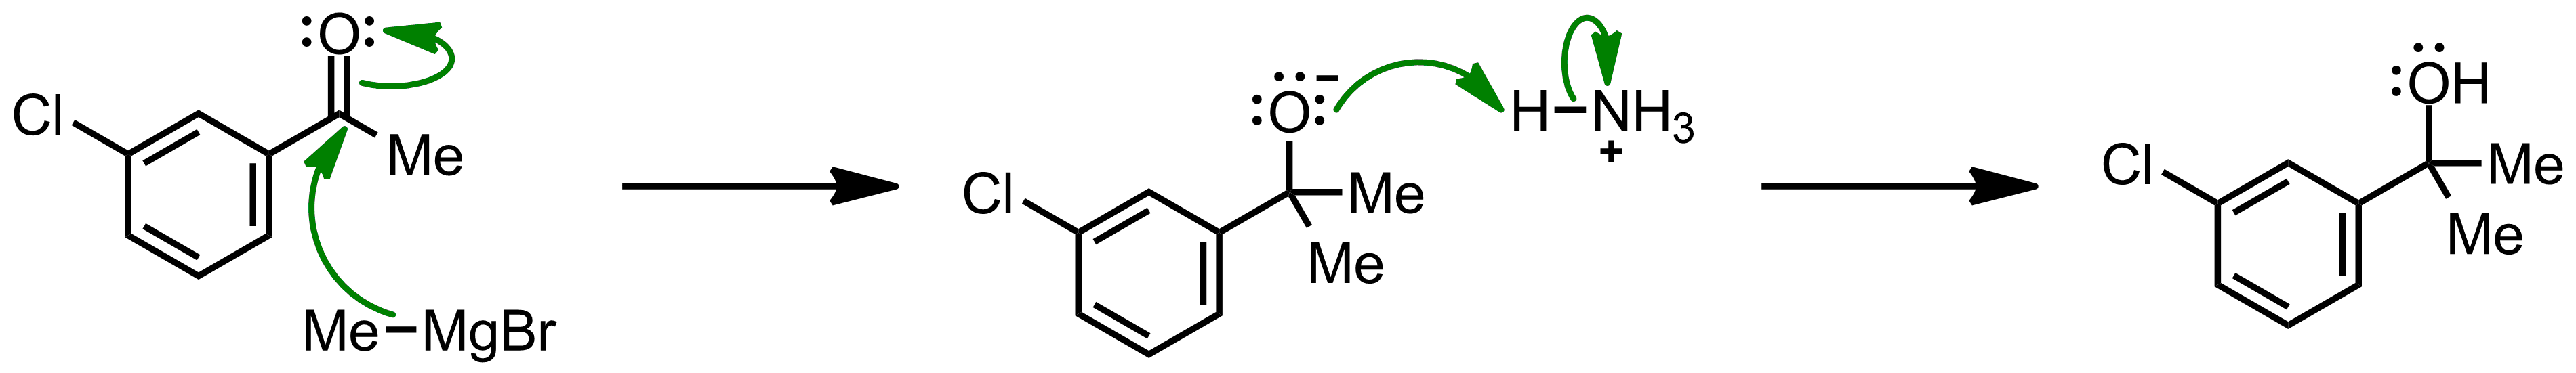 Mechanism of the Grignard Reaction